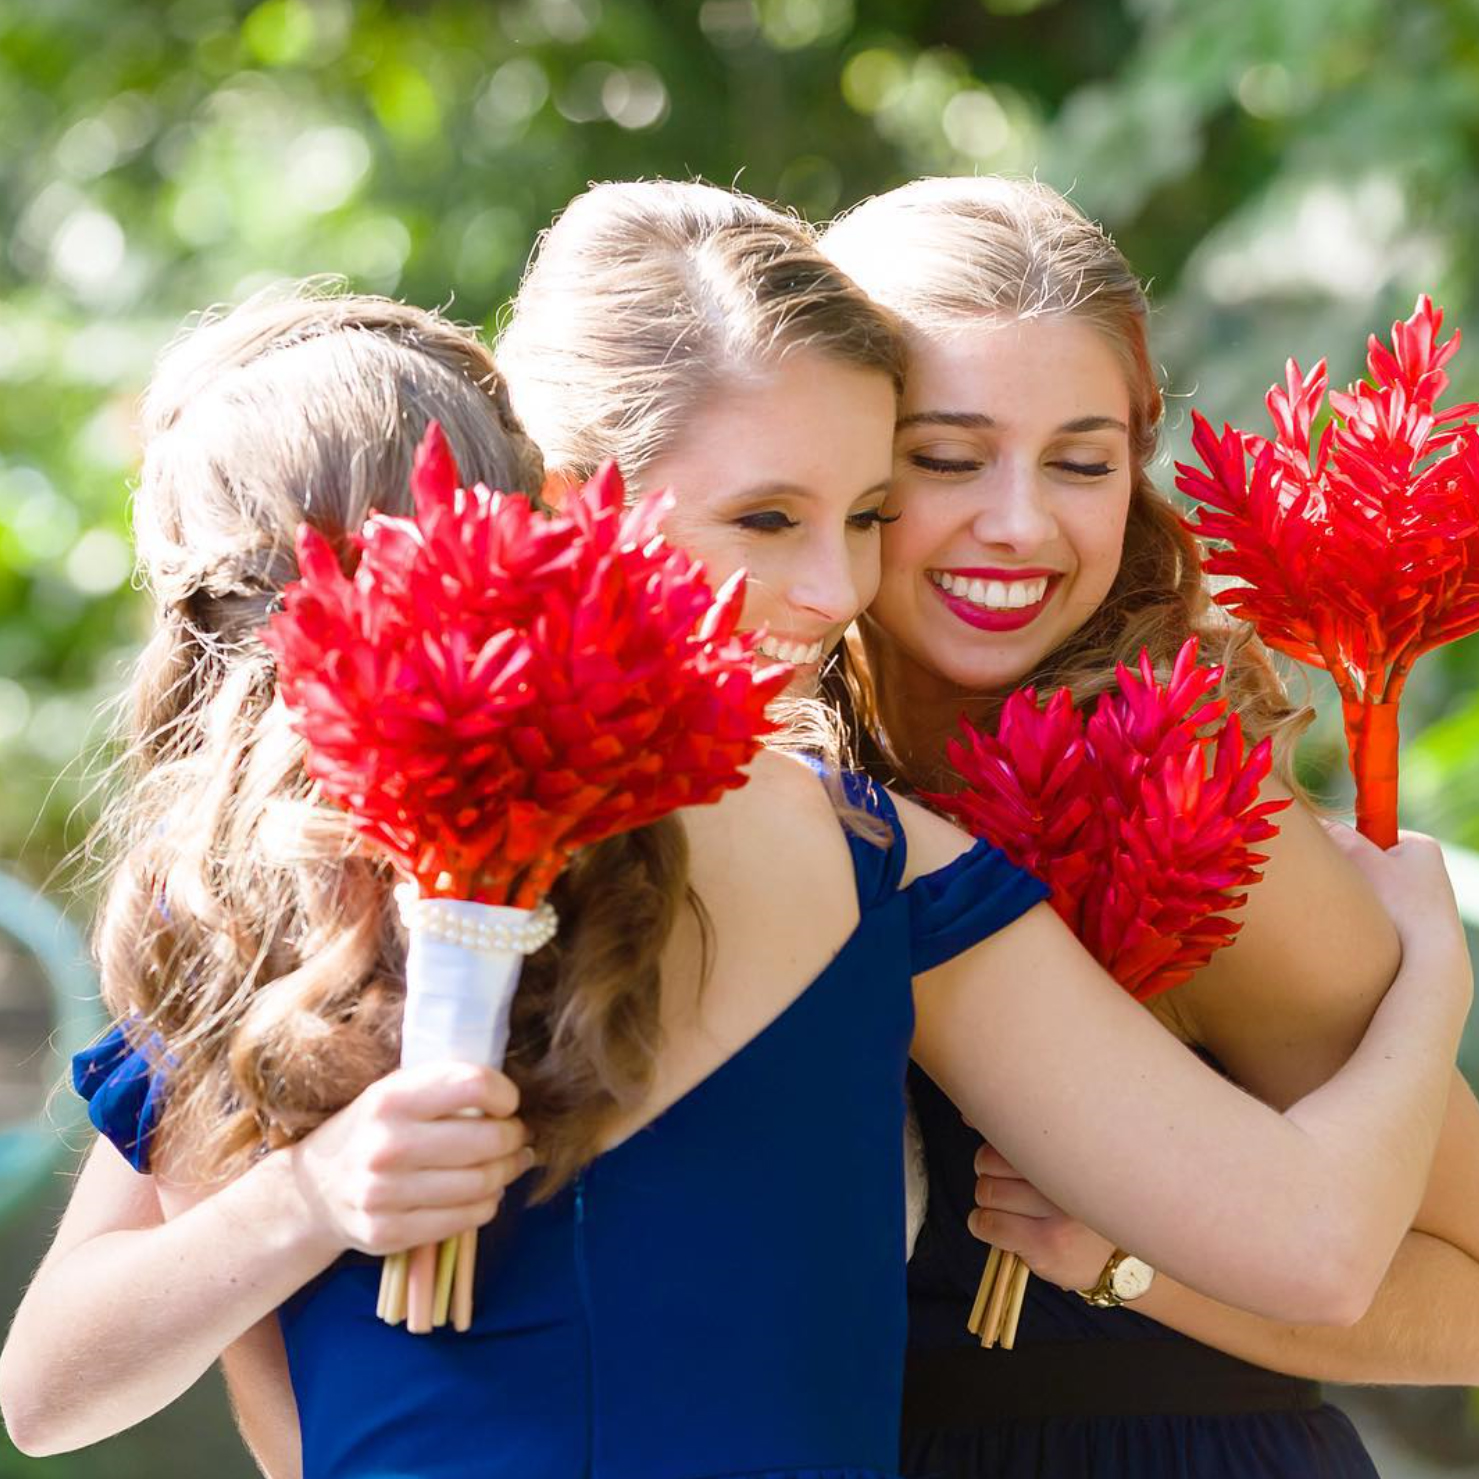 Blue Dresses and Red Bouquets Make a Colorful Party